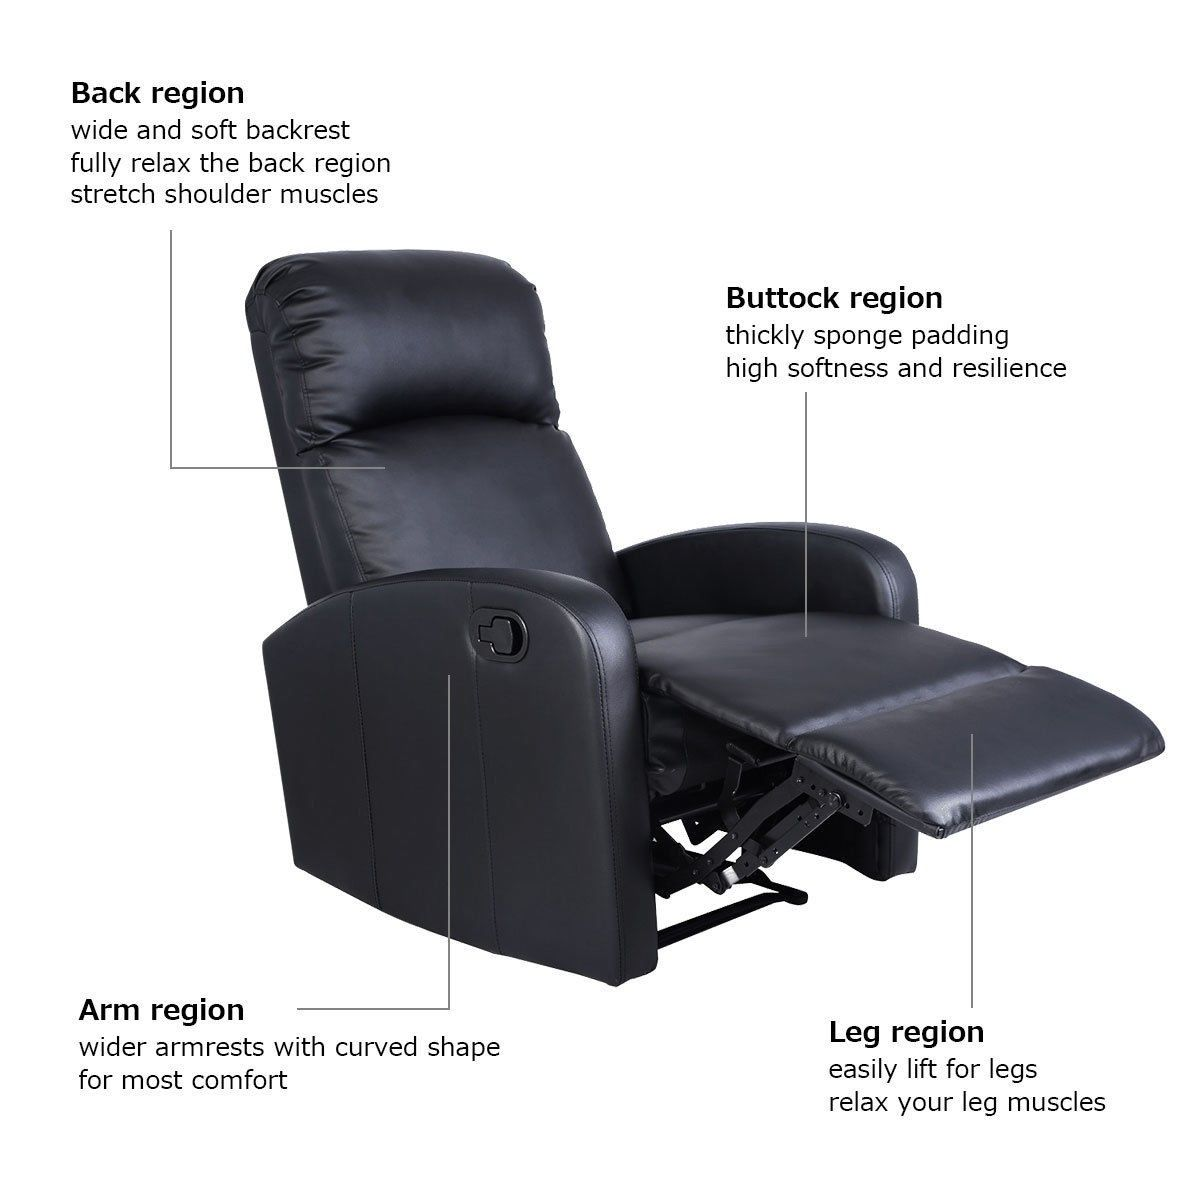 Peachy Black Pu Leather Recliner Massage Chair Sofa Furniture In Ncnpc Chair Design For Home Ncnpcorg